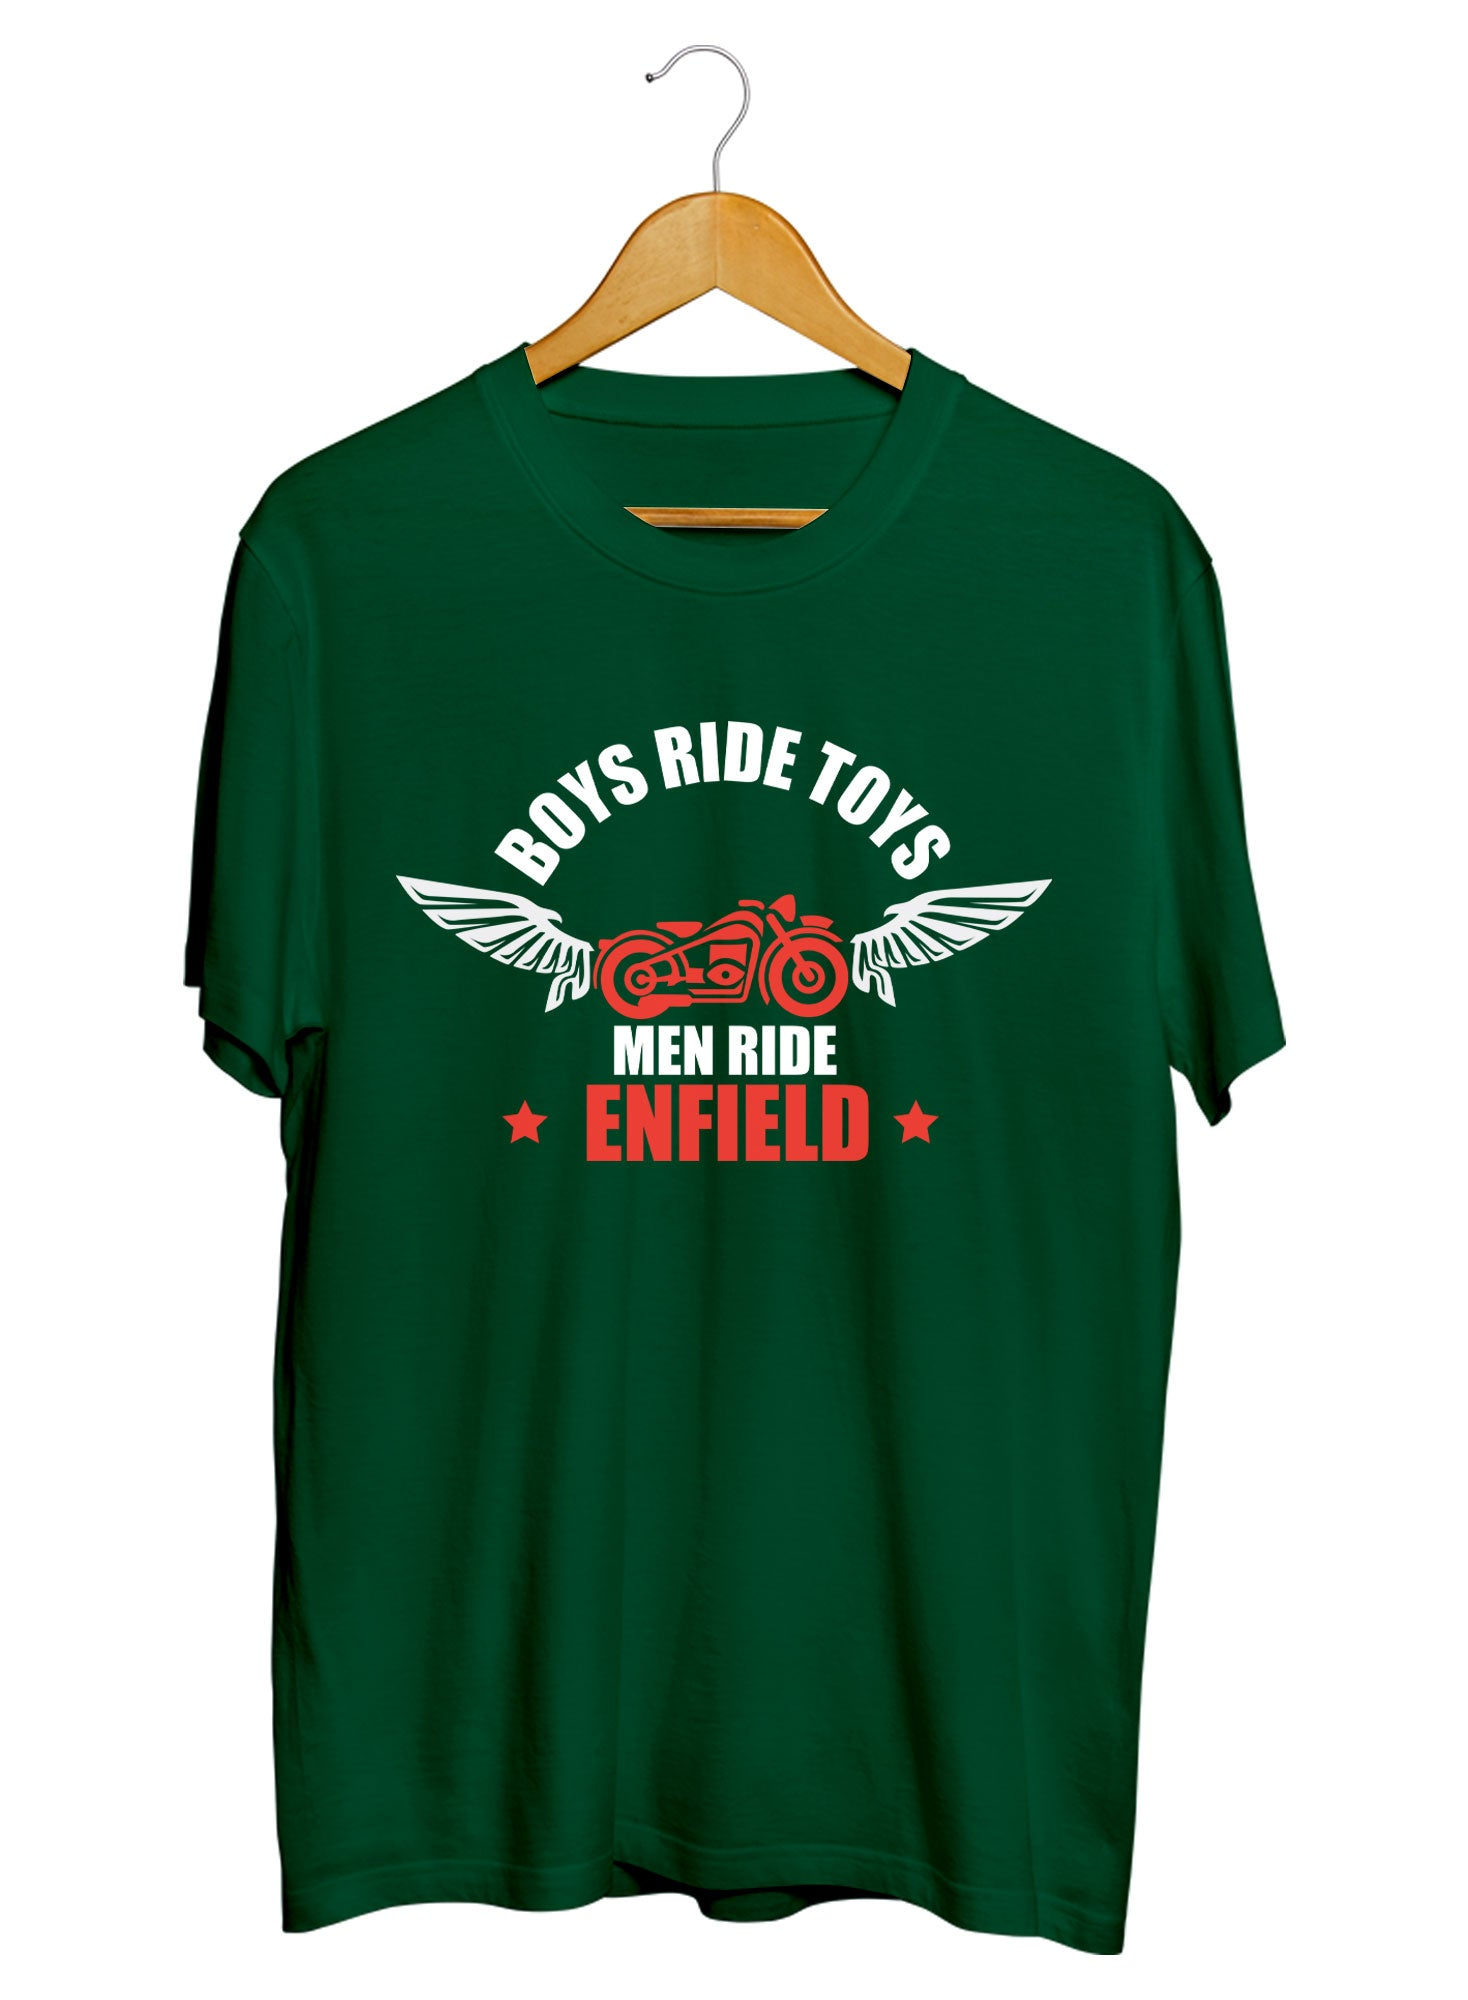 Men Ride Enfield T-shirts